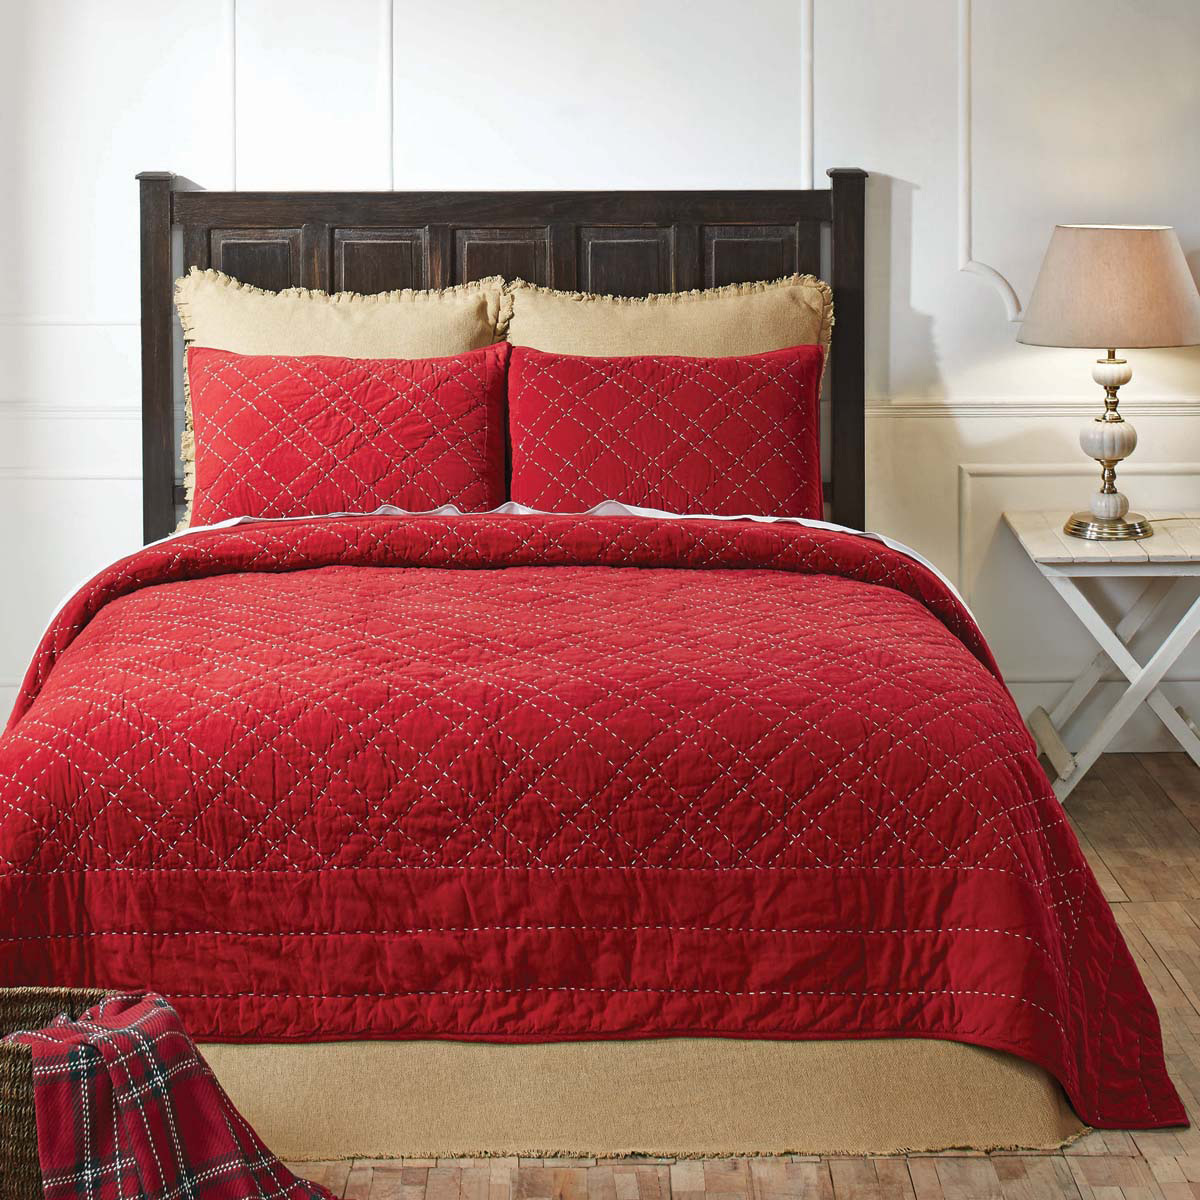 King Quilt Size Tucker Red Quilt King Size The Weed Patch